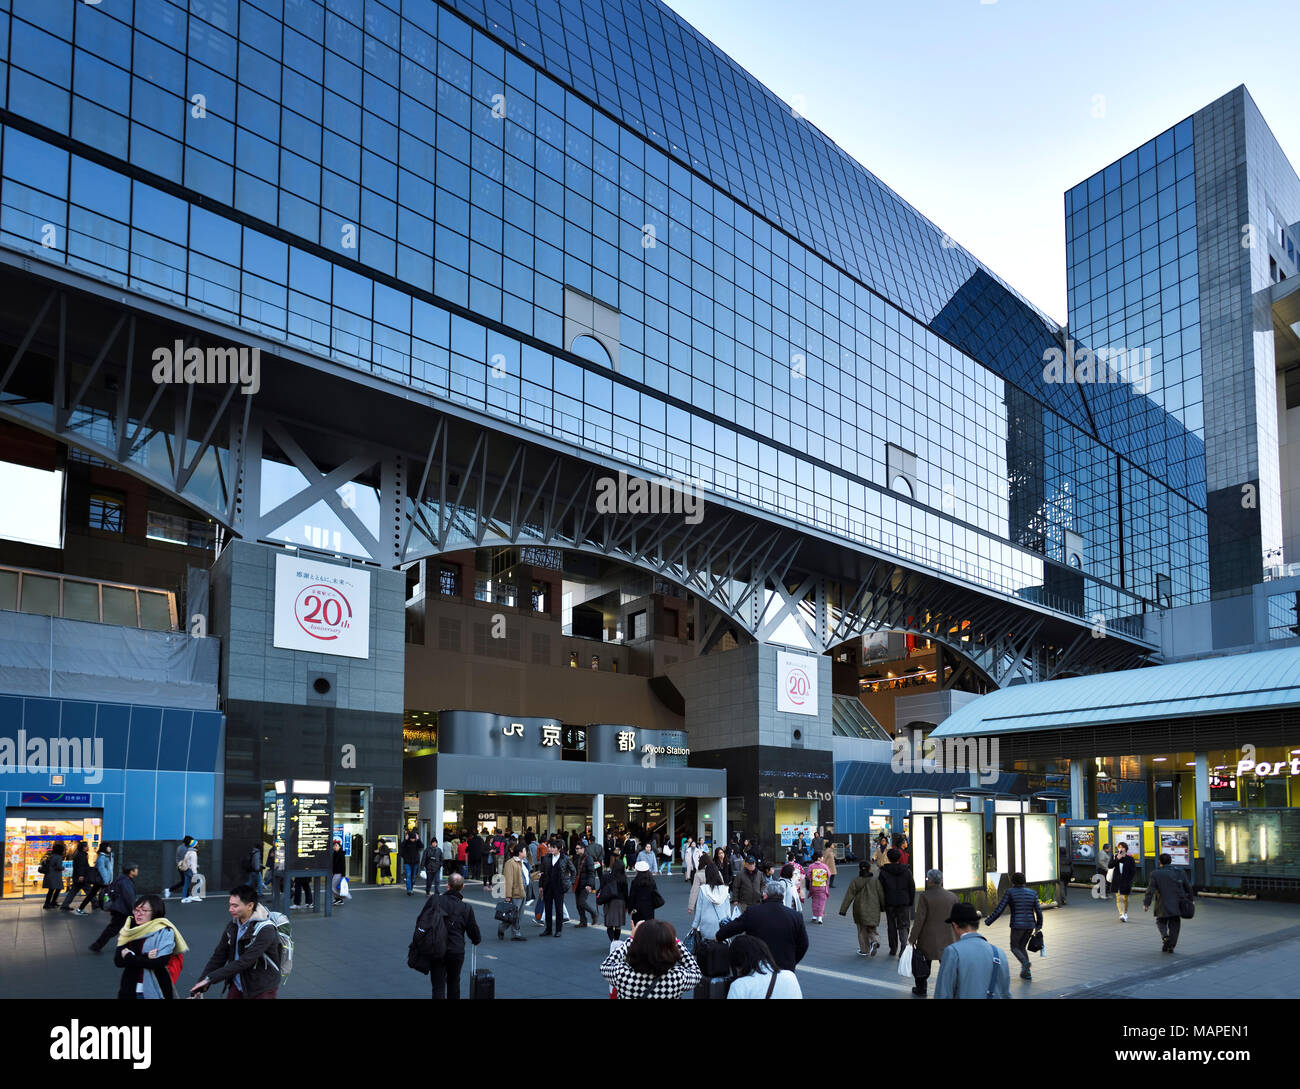 Kyoto Station, Kyoto-eki, modern glass building busy with people in the evening, second largest train station building in Japan. Shimogyo-ku, Kyoto, J Stock Photo